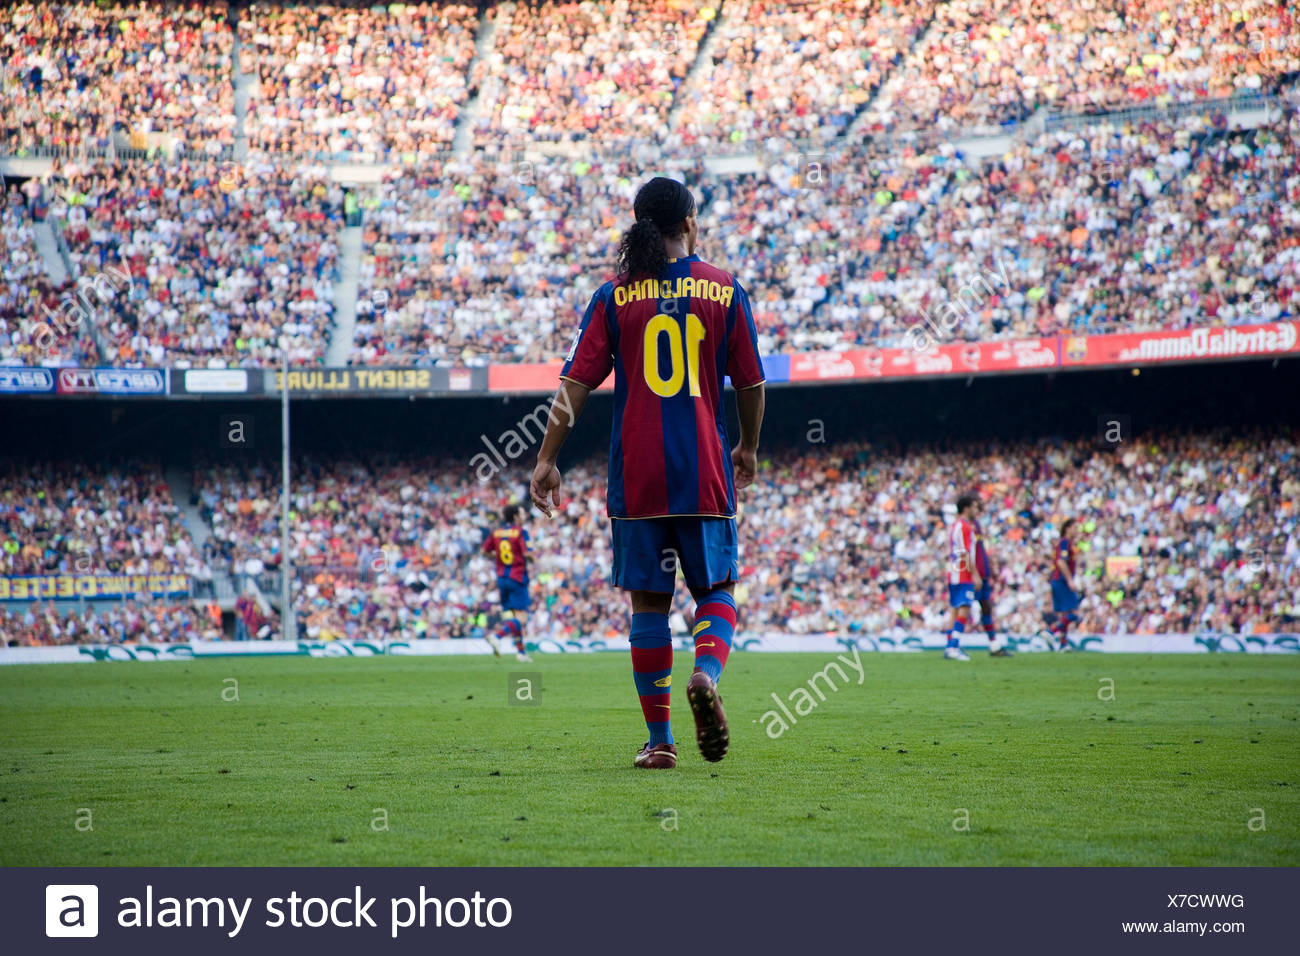 Ronaldinho, Camp Nou, Barcelona Football Club stadium, Barcelona, Catalonia, Spain, Europe - Stock Image